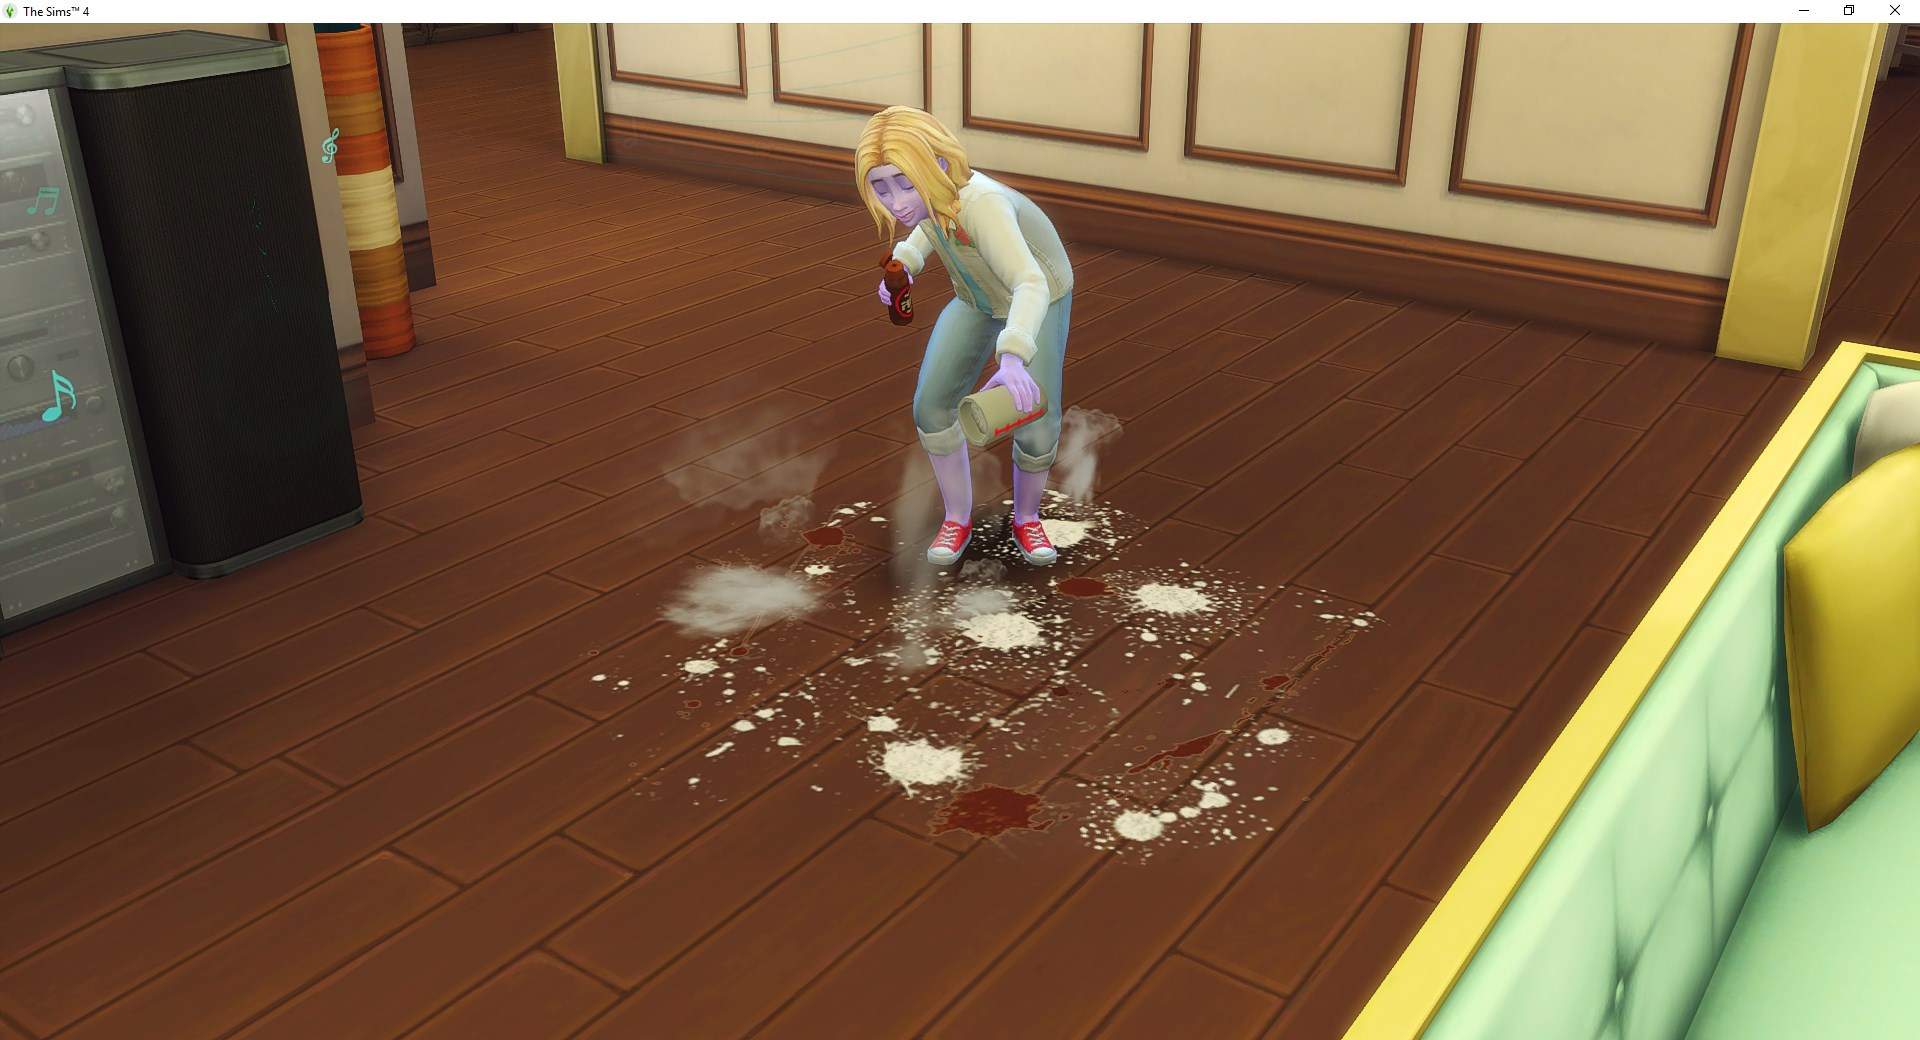 2019-08-21 20_08_14-The Sims™ 4